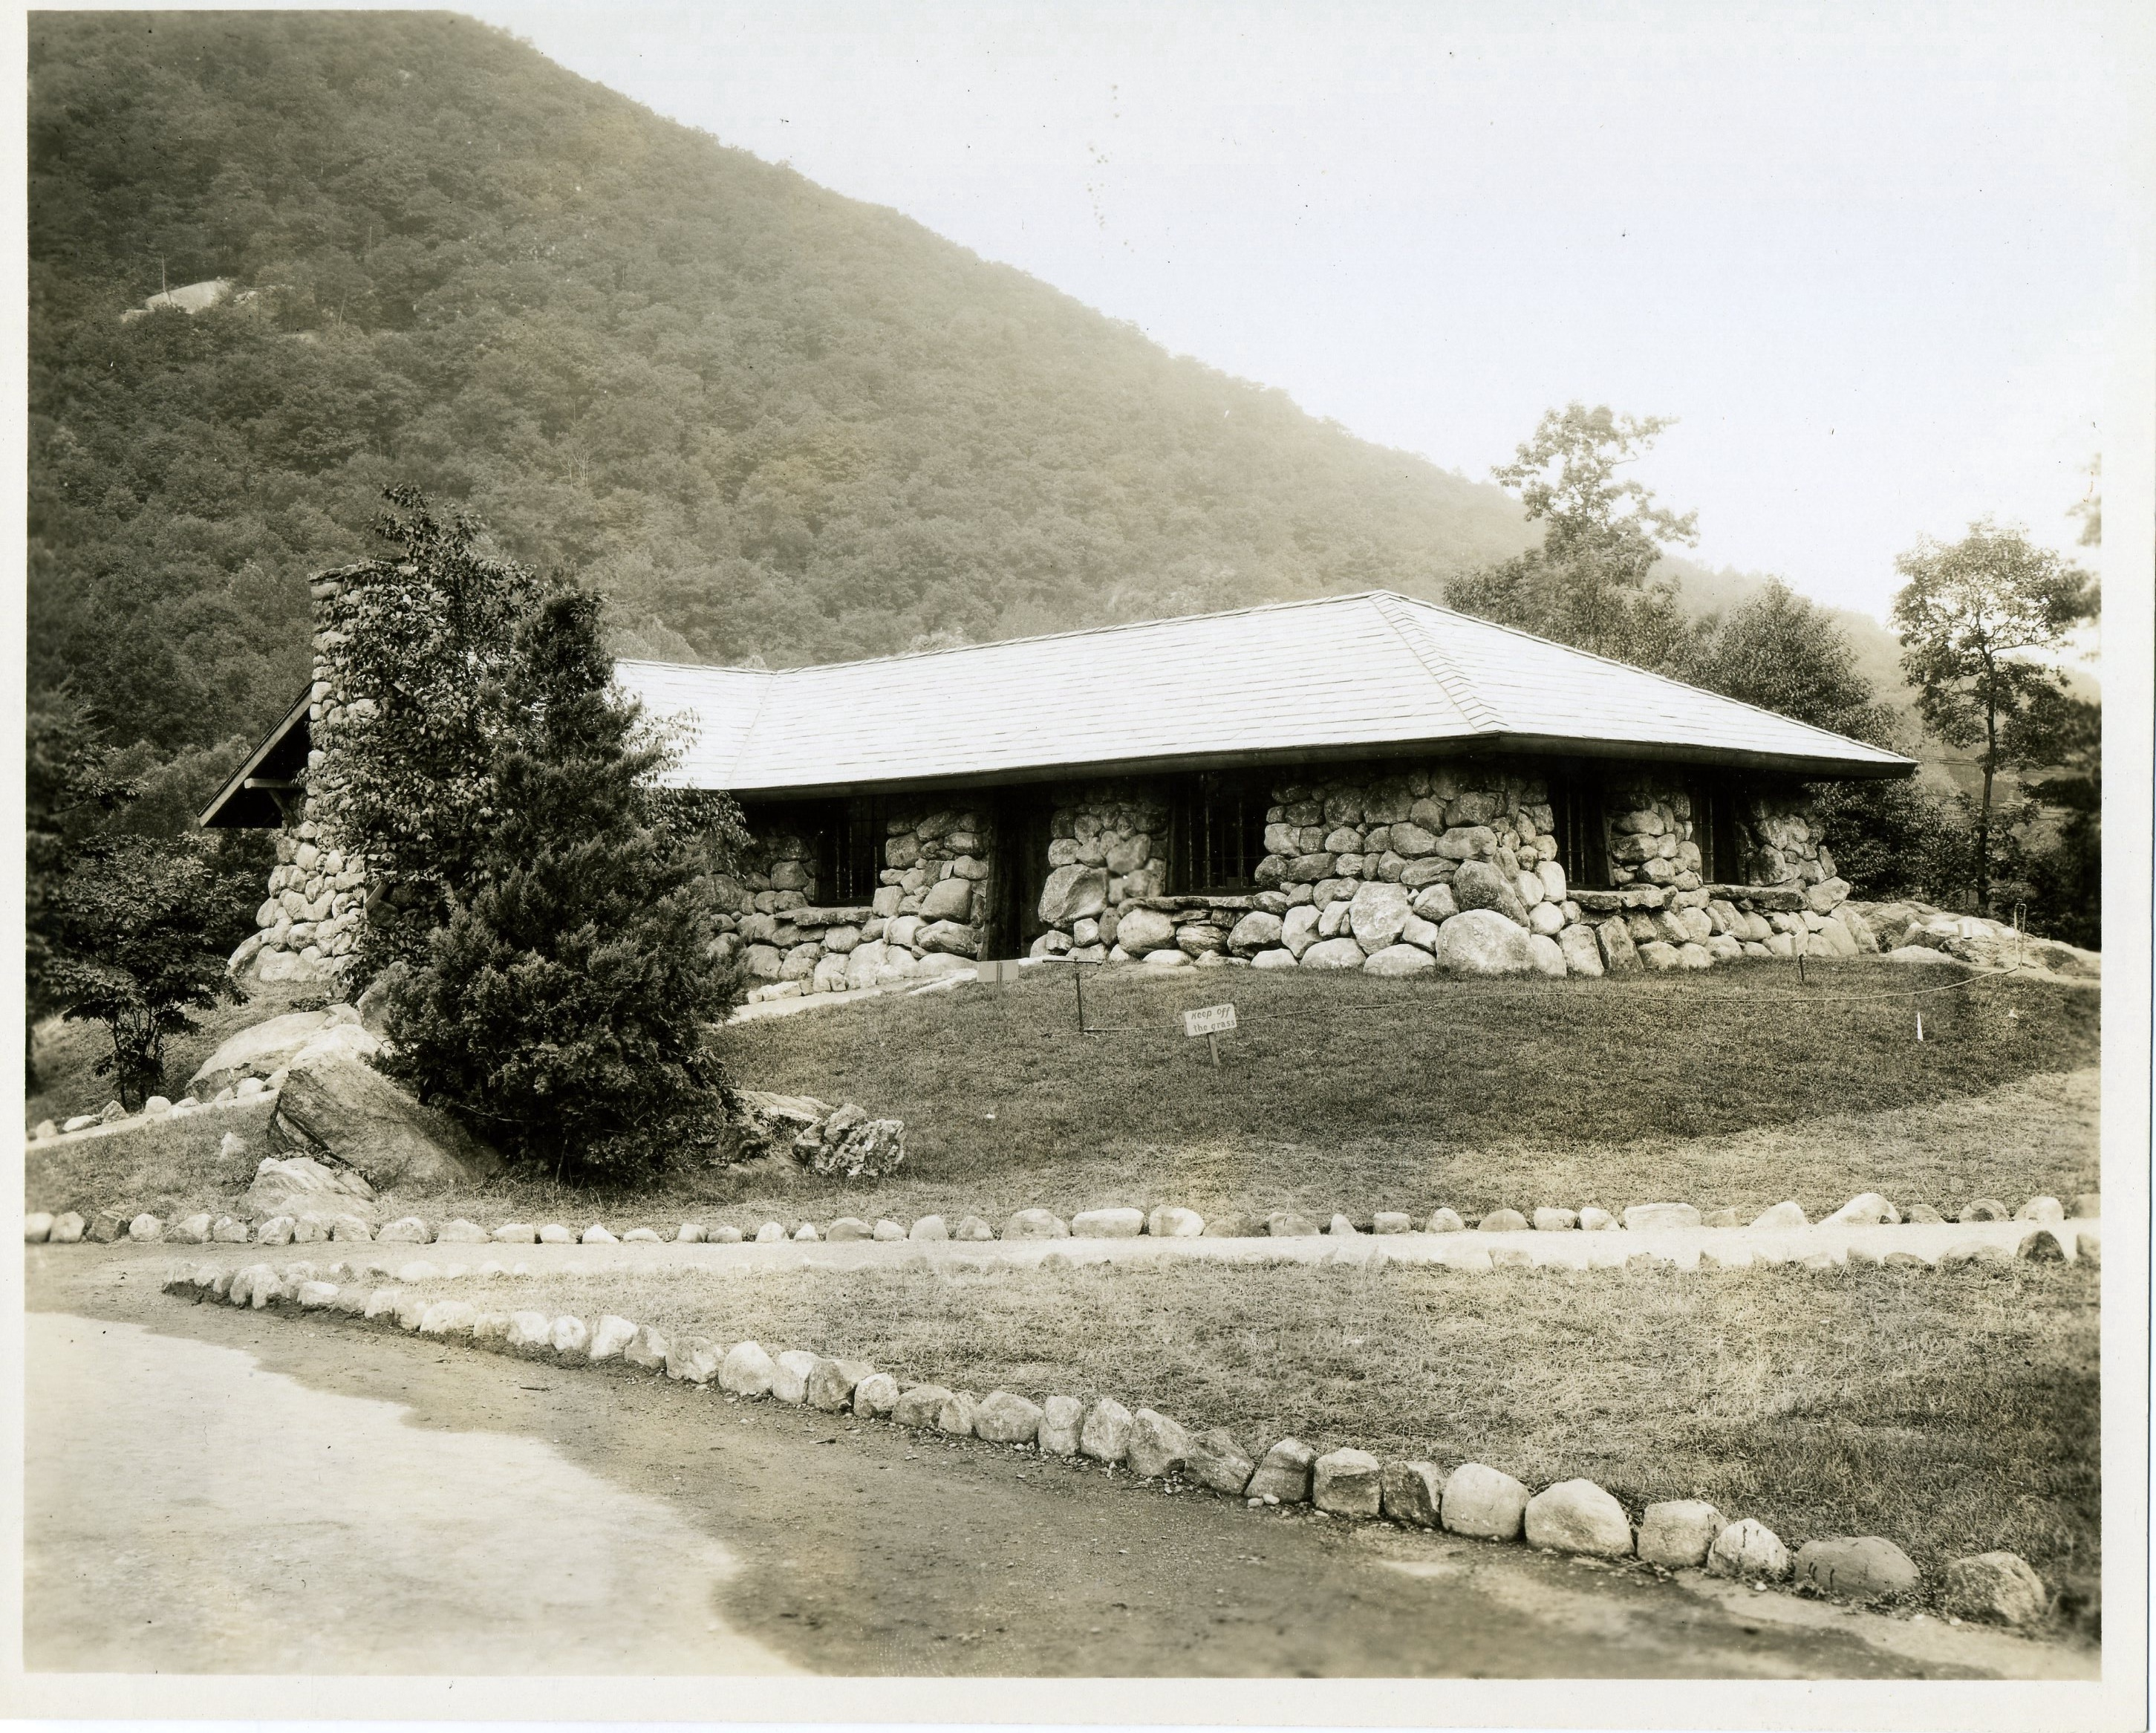 CCC Building at the Palisades Park